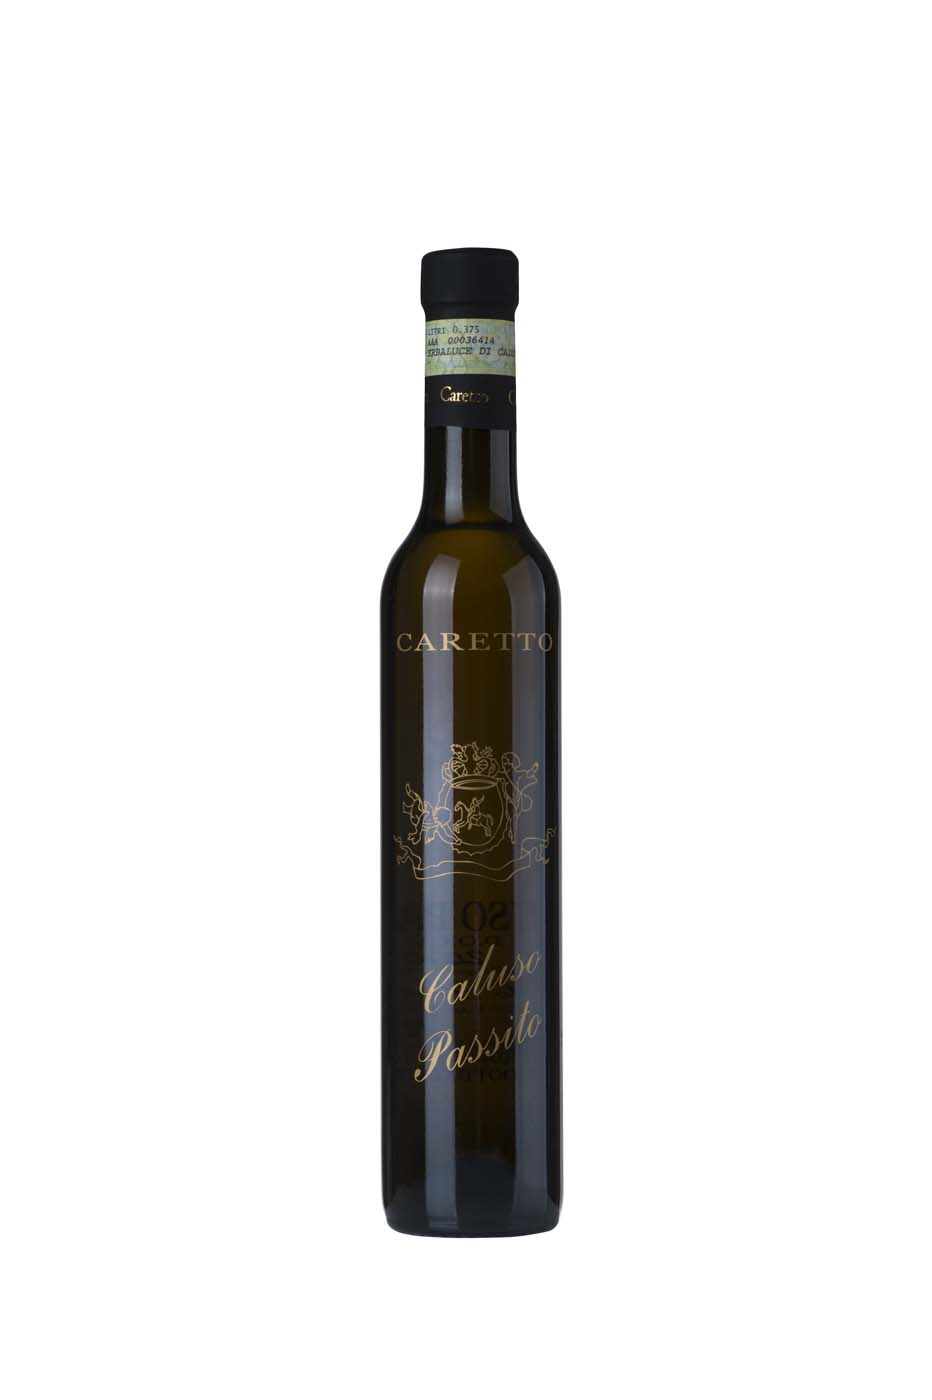 Caluso Passito doc - Caretto